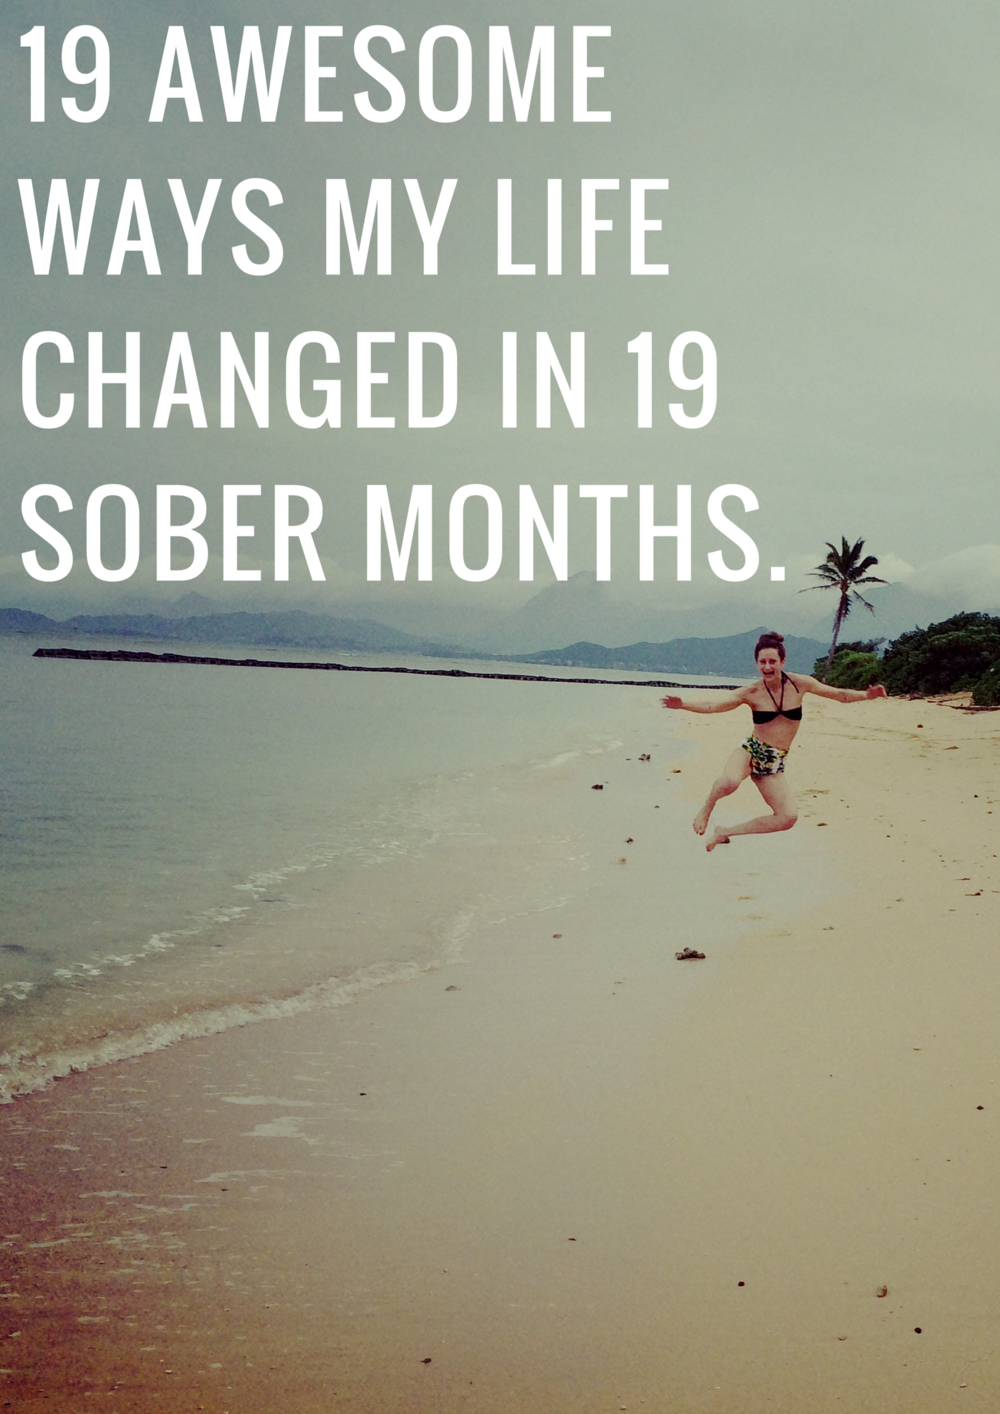 19 AWESOME WAYS MY LIFE CHANGED IN 19 MONTHS